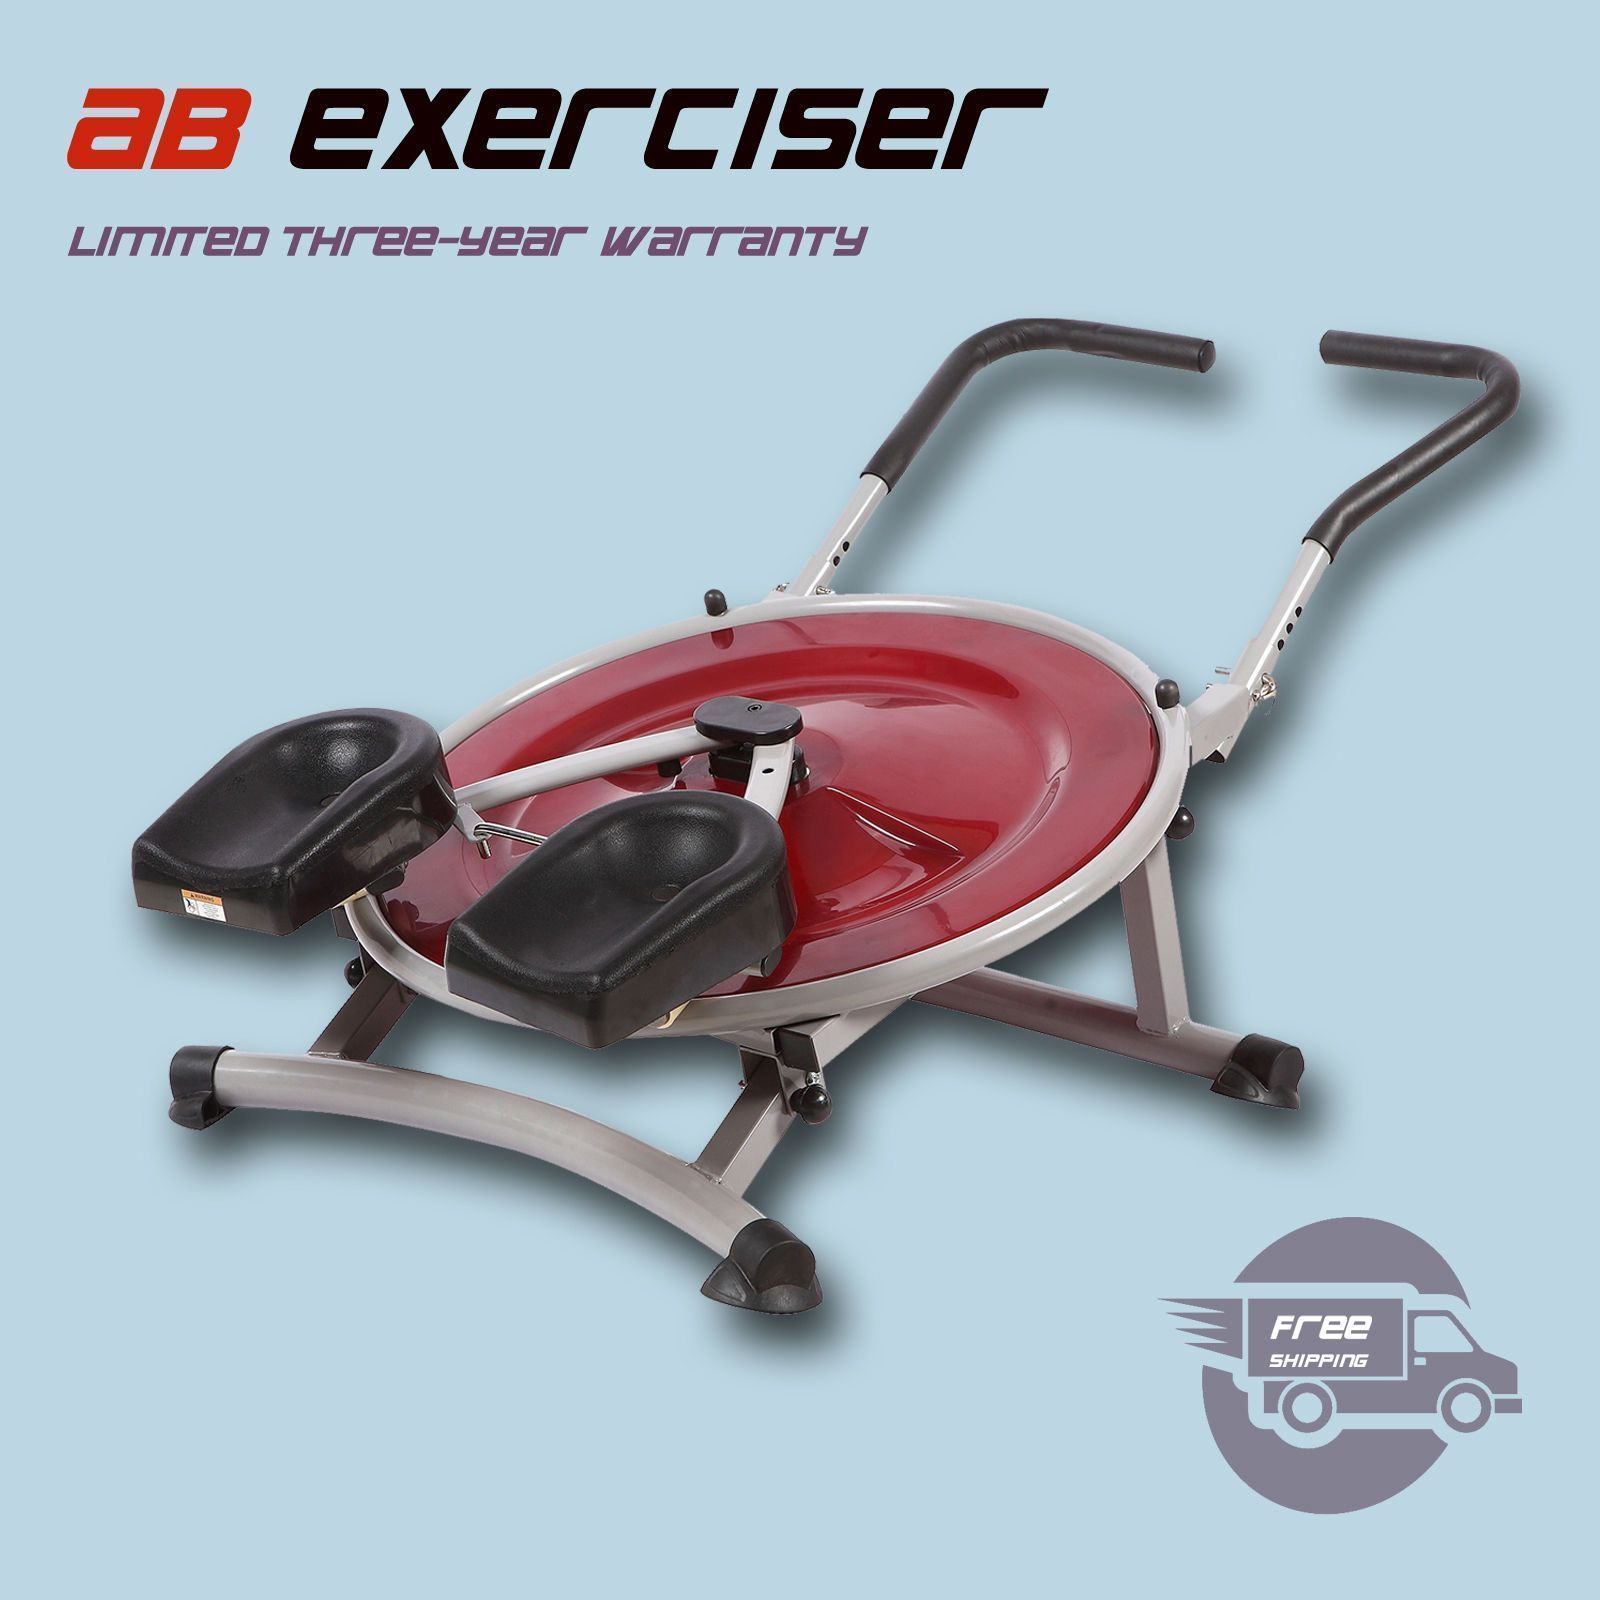 AB Circle Pro Abs Exercise Machine Workout Equipment Abdominal Fitness Home Gym #abexercisemachine AB Circle Pro Abs Exercise Machine Workout Equipment Abdominal Fitness Home Gym #abexercisemachine AB Circle Pro Abs Exercise Machine Workout Equipment Abdominal Fitness Home Gym #abexercisemachine AB Circle Pro Abs Exercise Machine Workout Equipment Abdominal Fitness Home Gym #abexercisemachine AB Circle Pro Abs Exercise Machine Workout Equipment Abdominal Fitness Home Gym #abexercisemachine AB Ci #abexercisemachine